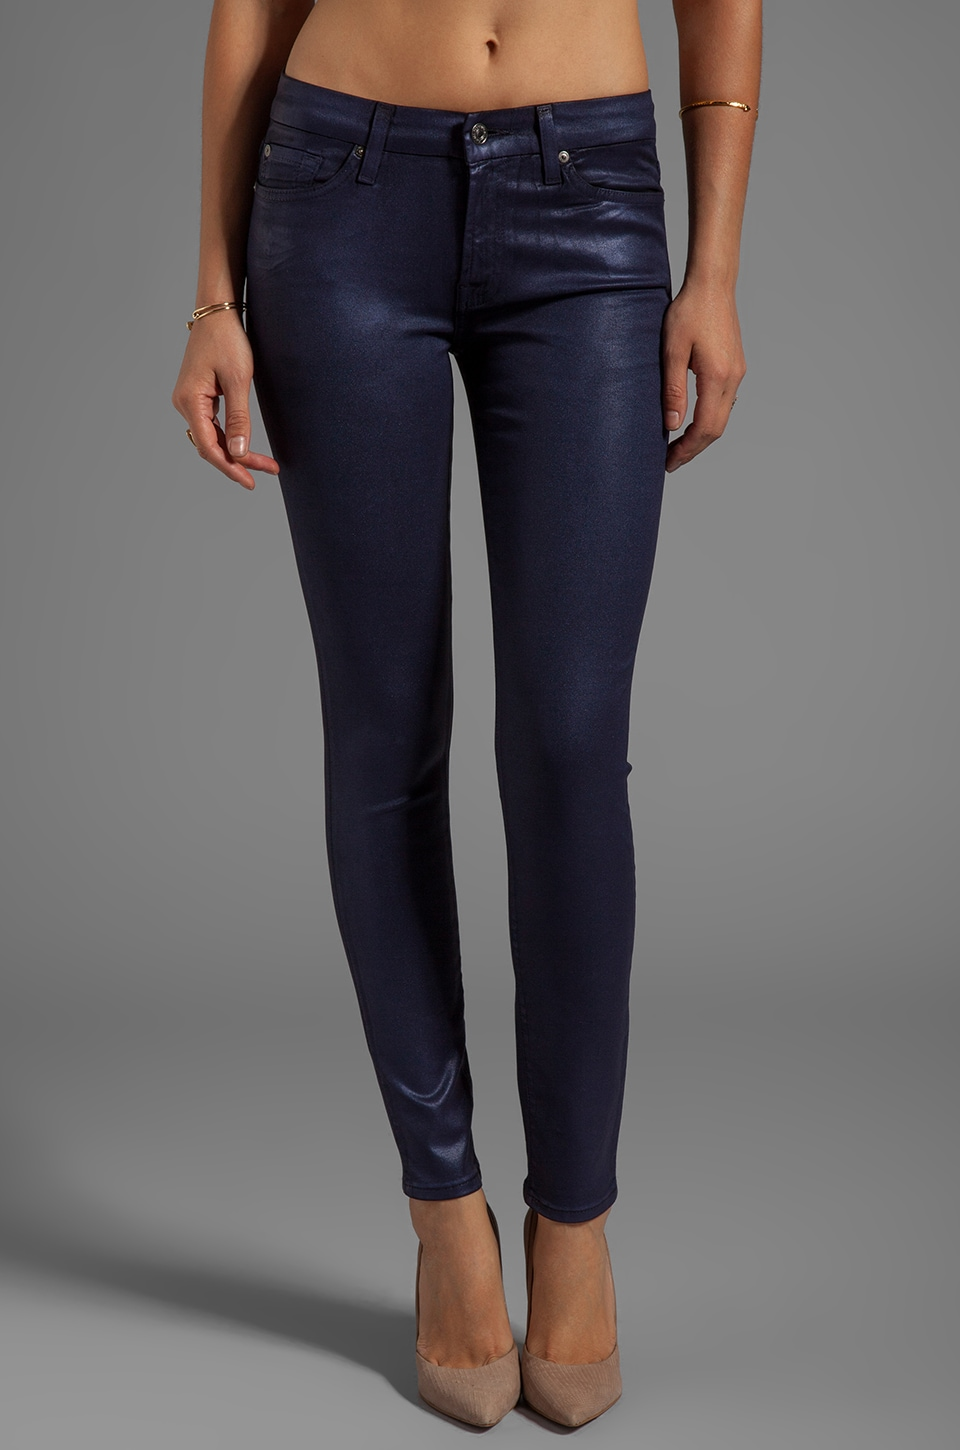 7 For All Mankind The Skinny in Majestic Purple